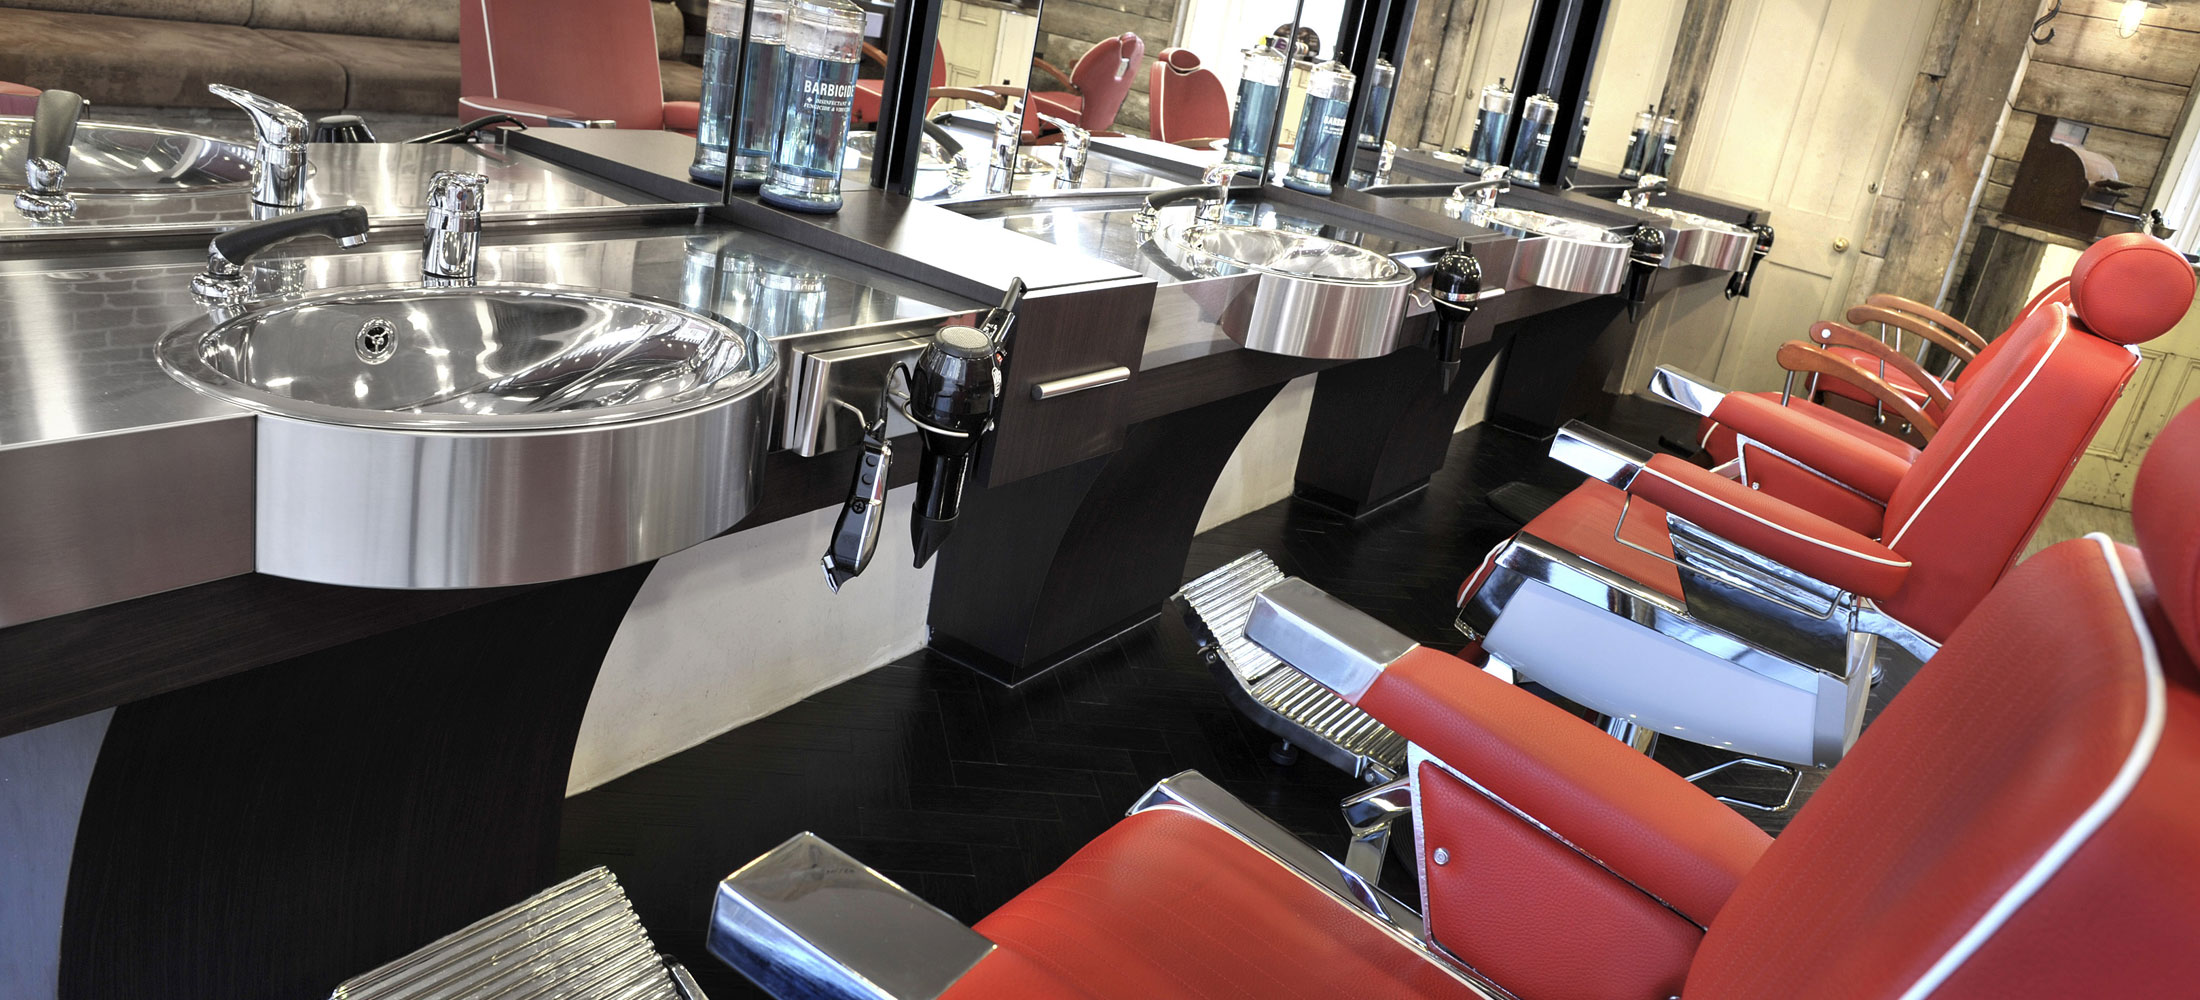 mutley barbers plymouth wet shaves plymouth beard trimming plymouth mens hairstyling plymouth. Black Bedroom Furniture Sets. Home Design Ideas